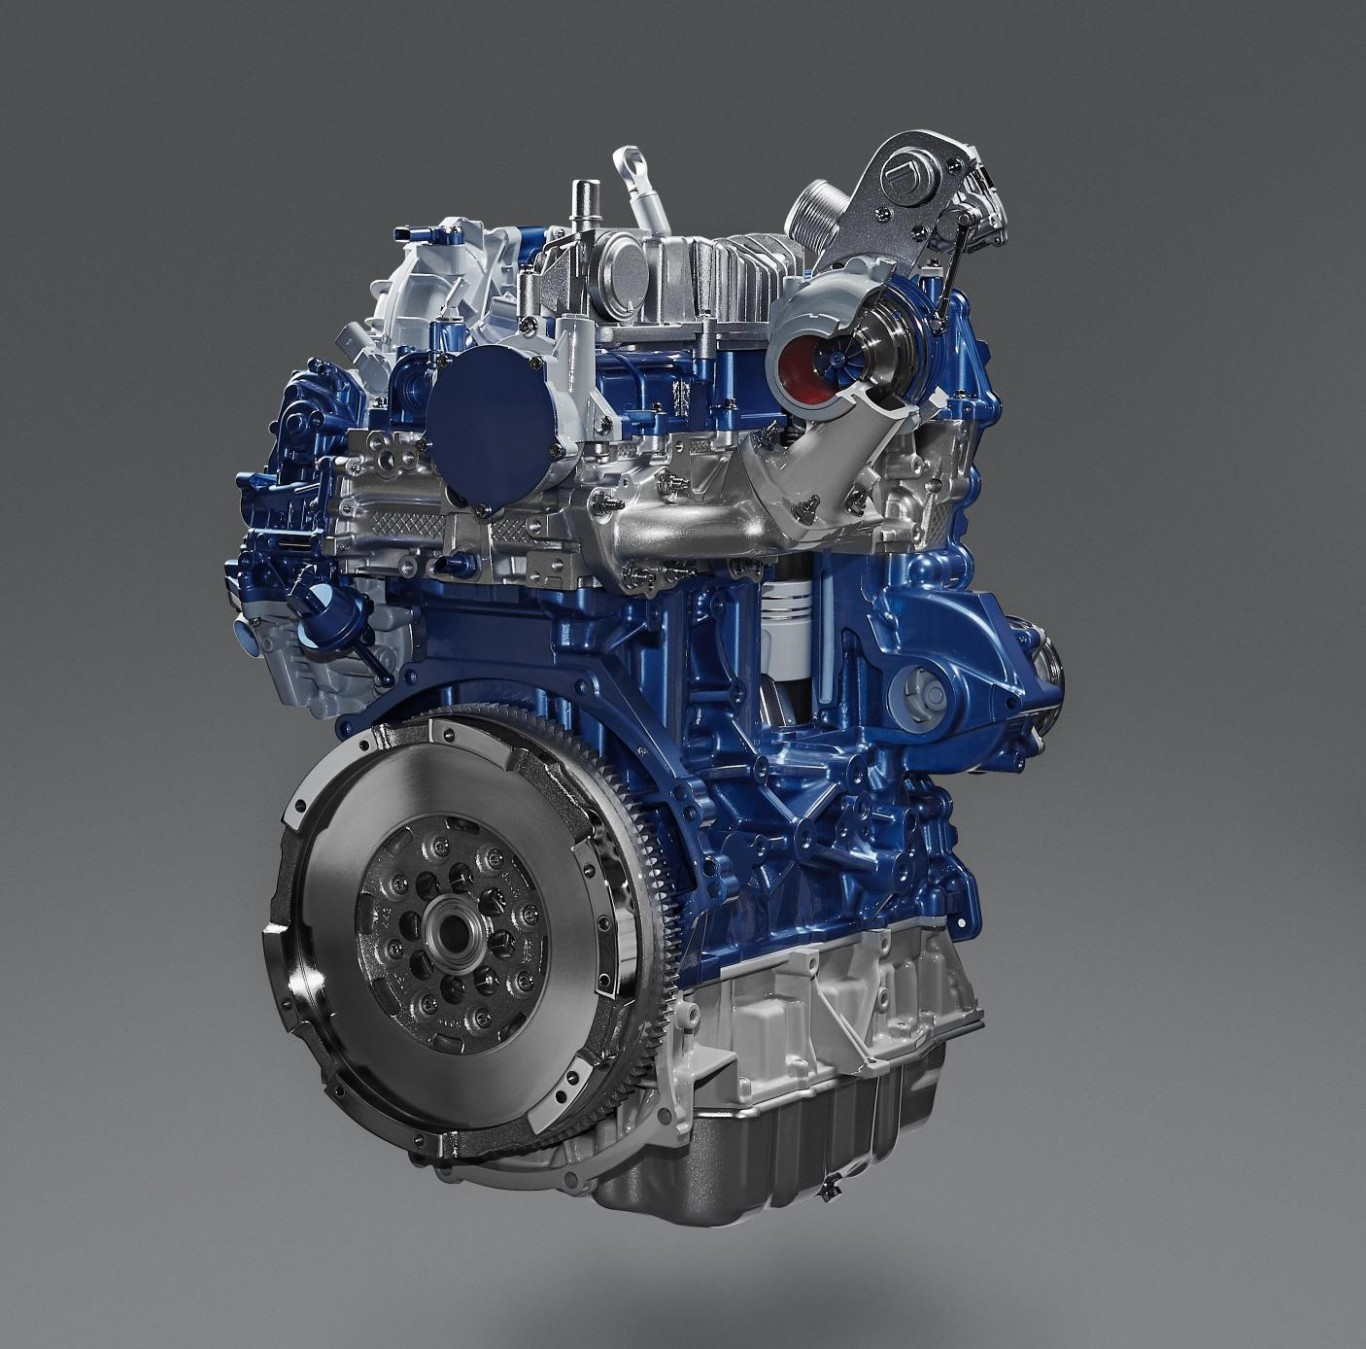 20-ford-ecoblue-engine-described-as-being-a-diesel-game-changer_2